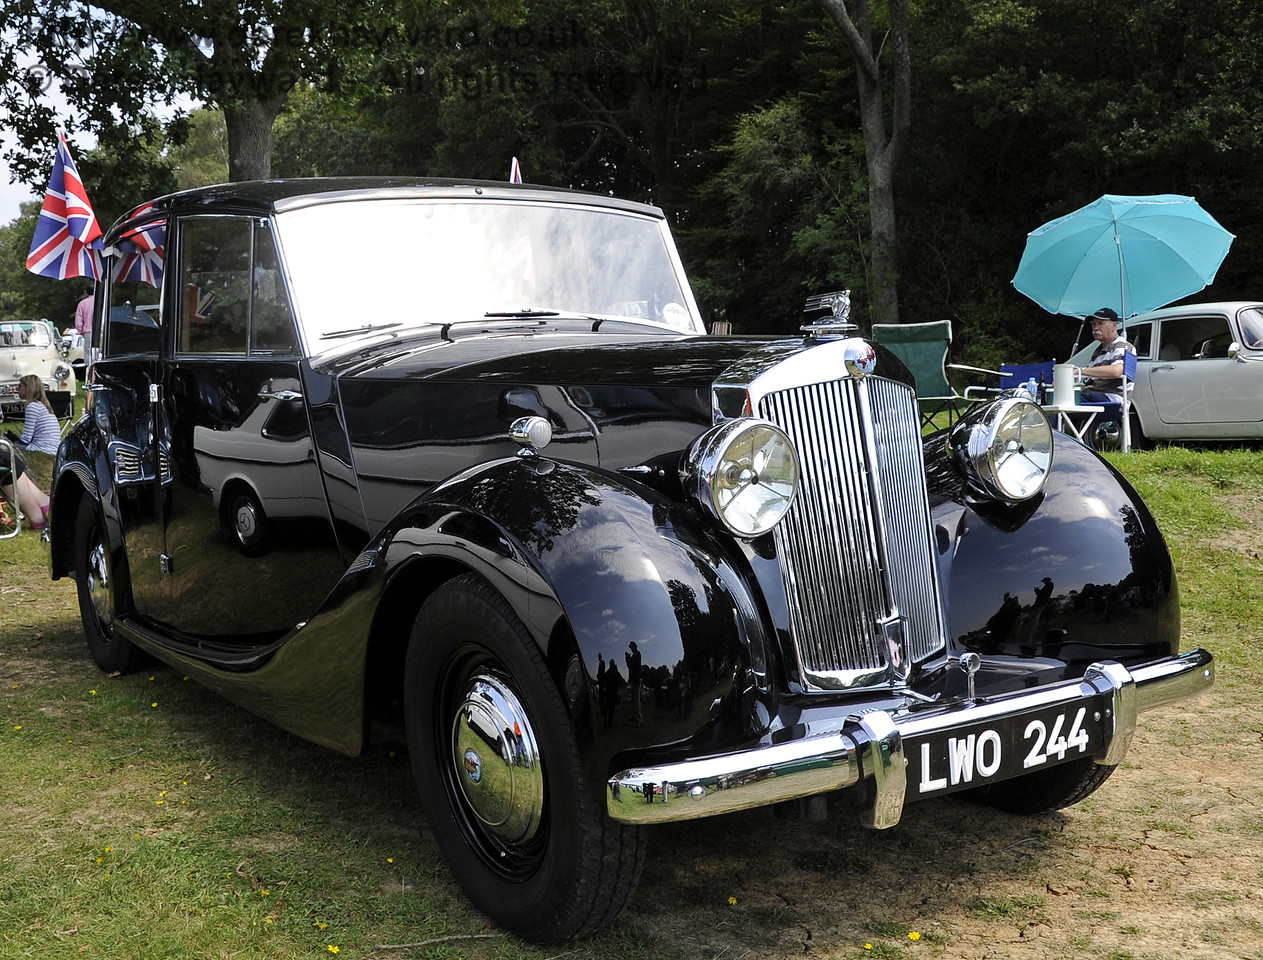 Jim Shotter won the Bluebell Cup for the best post-war motor car, with his 1953 Triumph Renown, LWO244.  The judges commended the excellent presentation of the vehicle.  Bluebell Railway Vintage Transport Weekend, Horsted Keynes, 12.08.2012  5509